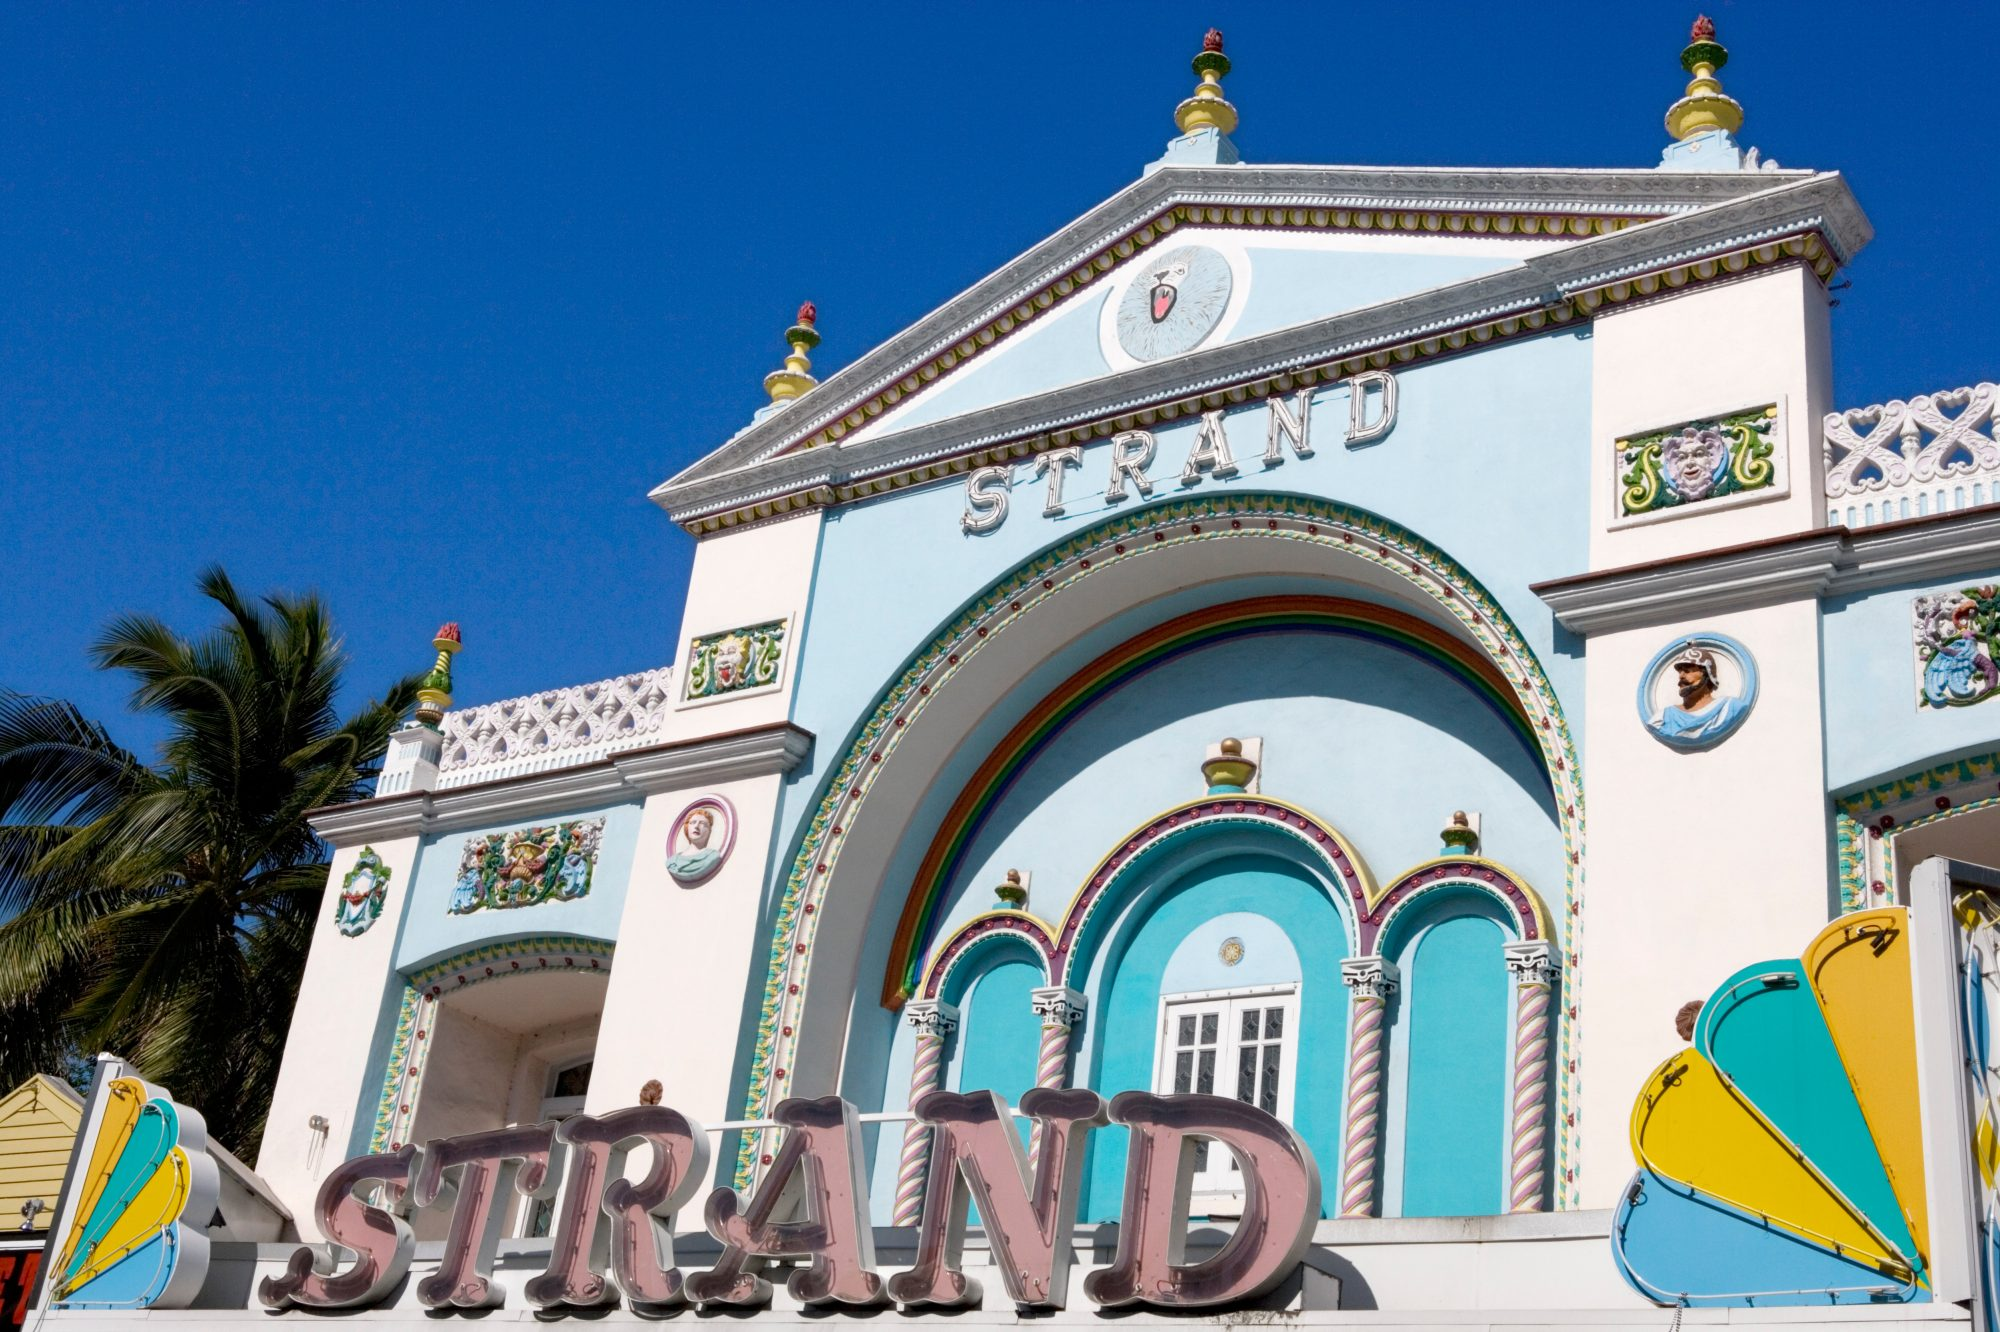 While it's now the restored façade of a convenience store, The Strand Theater was a popular place for live shows in the 1920s, and it's the perfect backdrop for a unique photo. Or head over to the Southernmost Point to snap a tourist-style selfie. Be on t